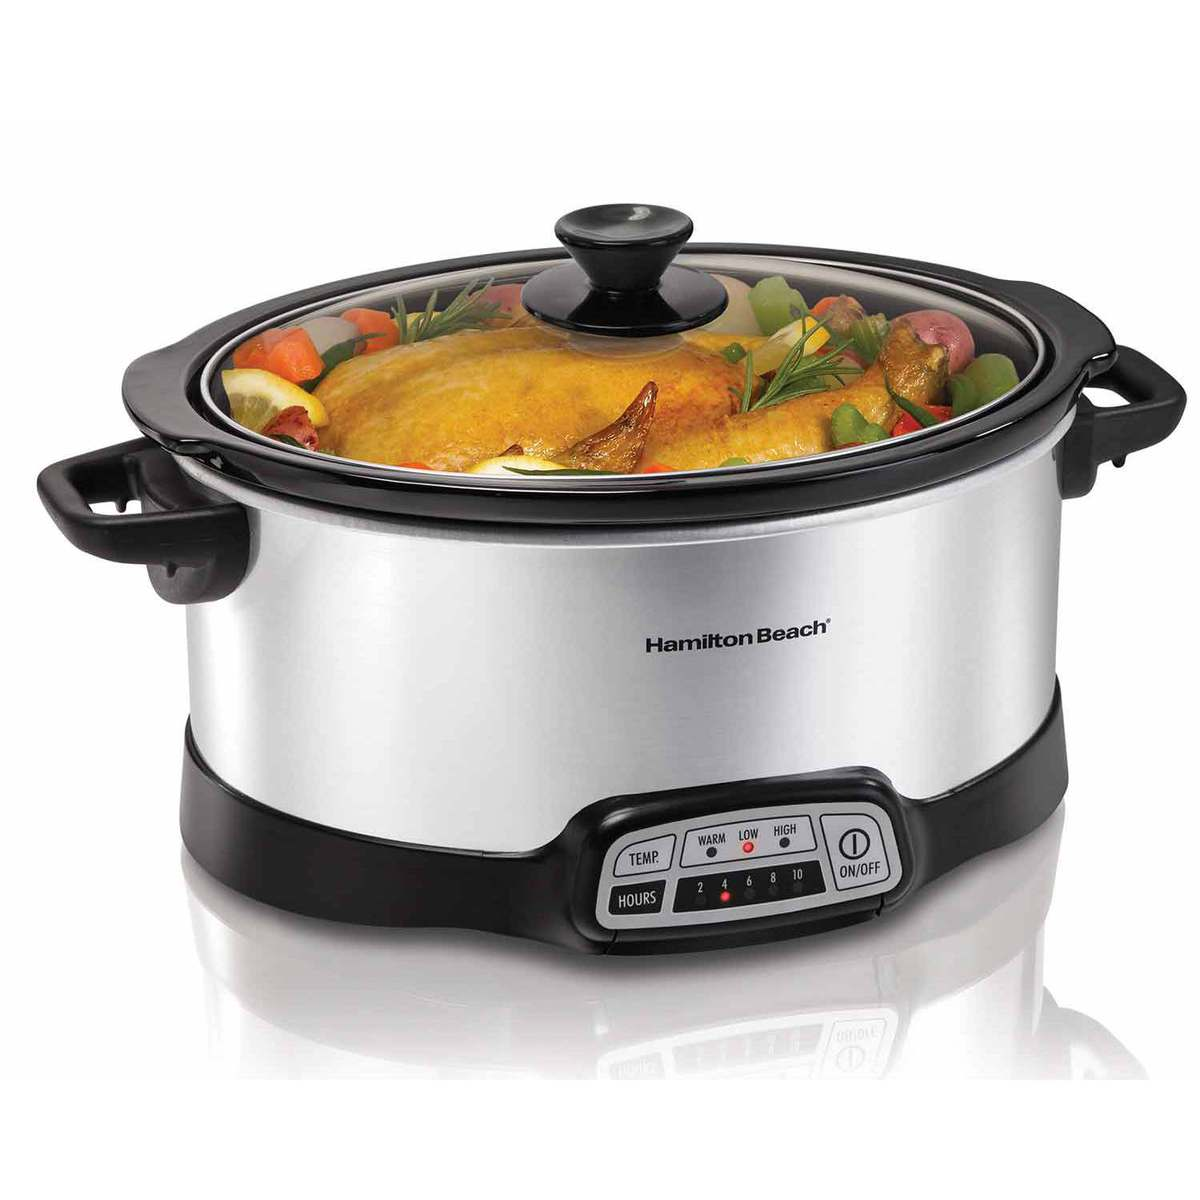 Programmable 7 Quart Slow Cooker (33473)